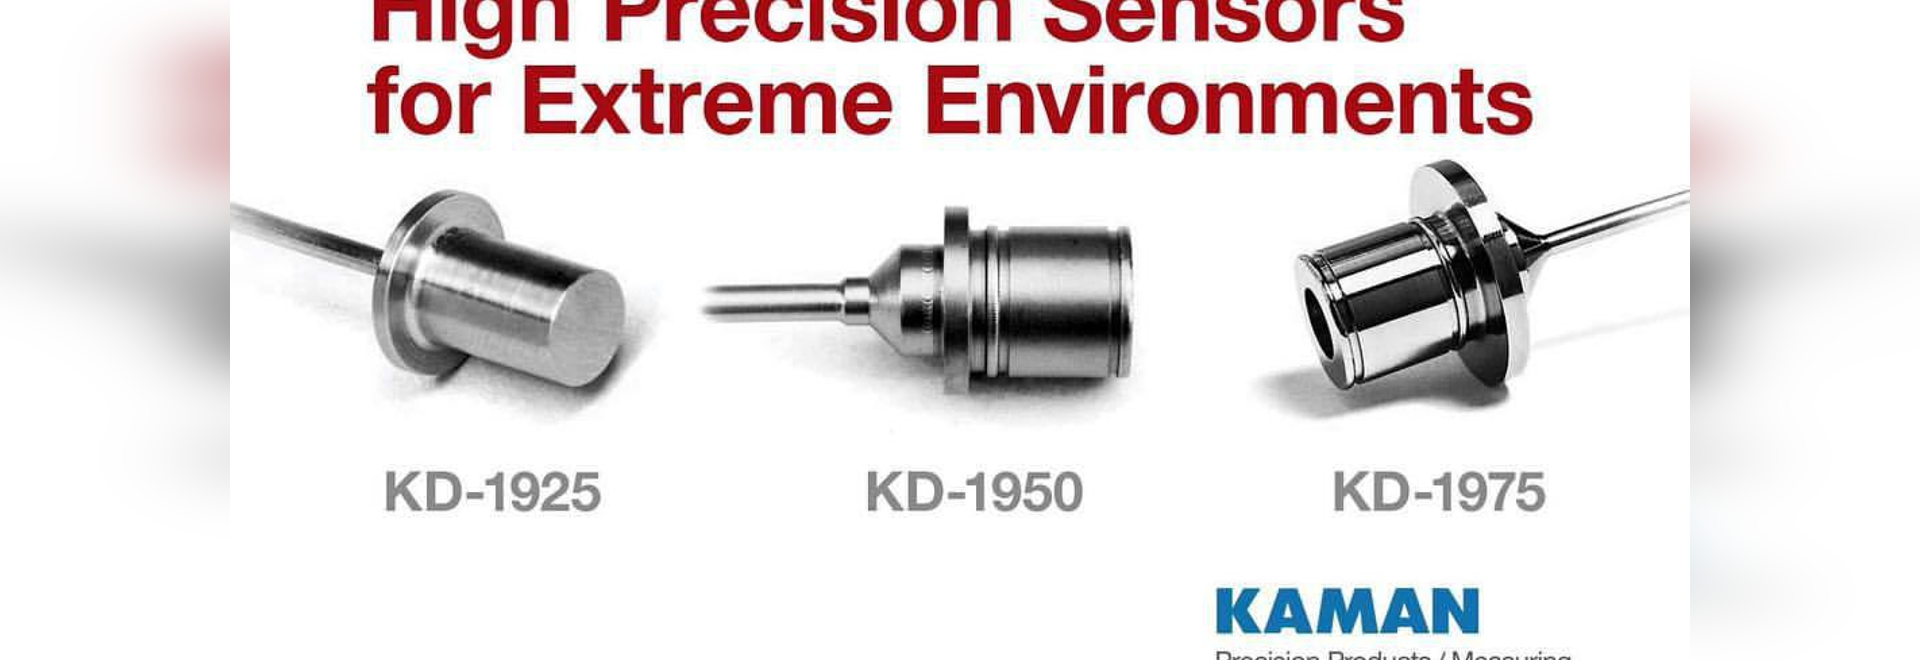 Kaman announces KD-1925, KD-1950 and KD-1975 Extreme Environment displacement sensors